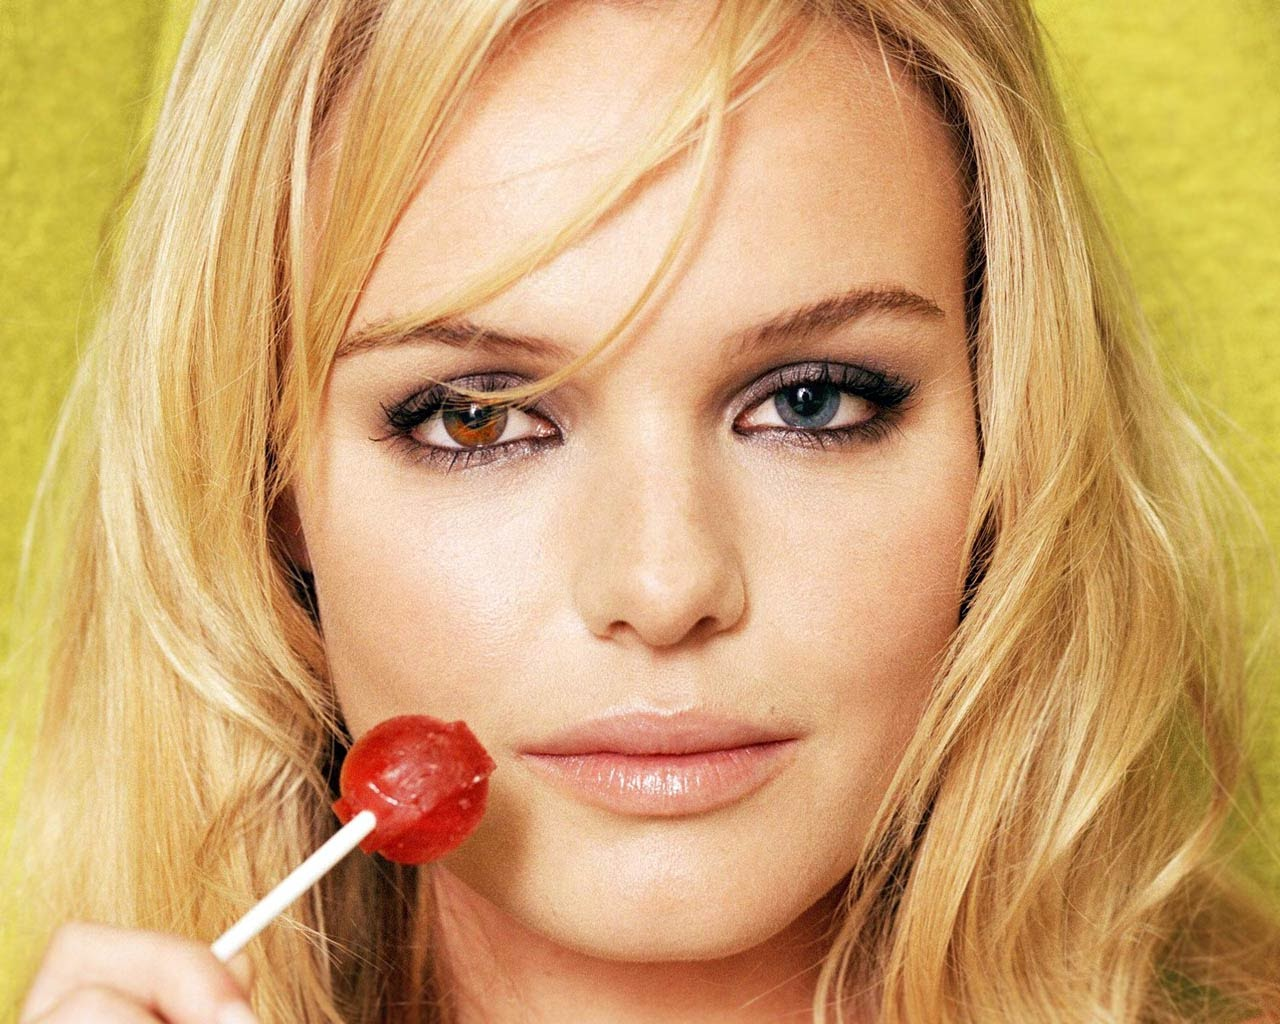 Kate Bosworth, the model, has one of the most recognizable sets of Heterochromia eyes